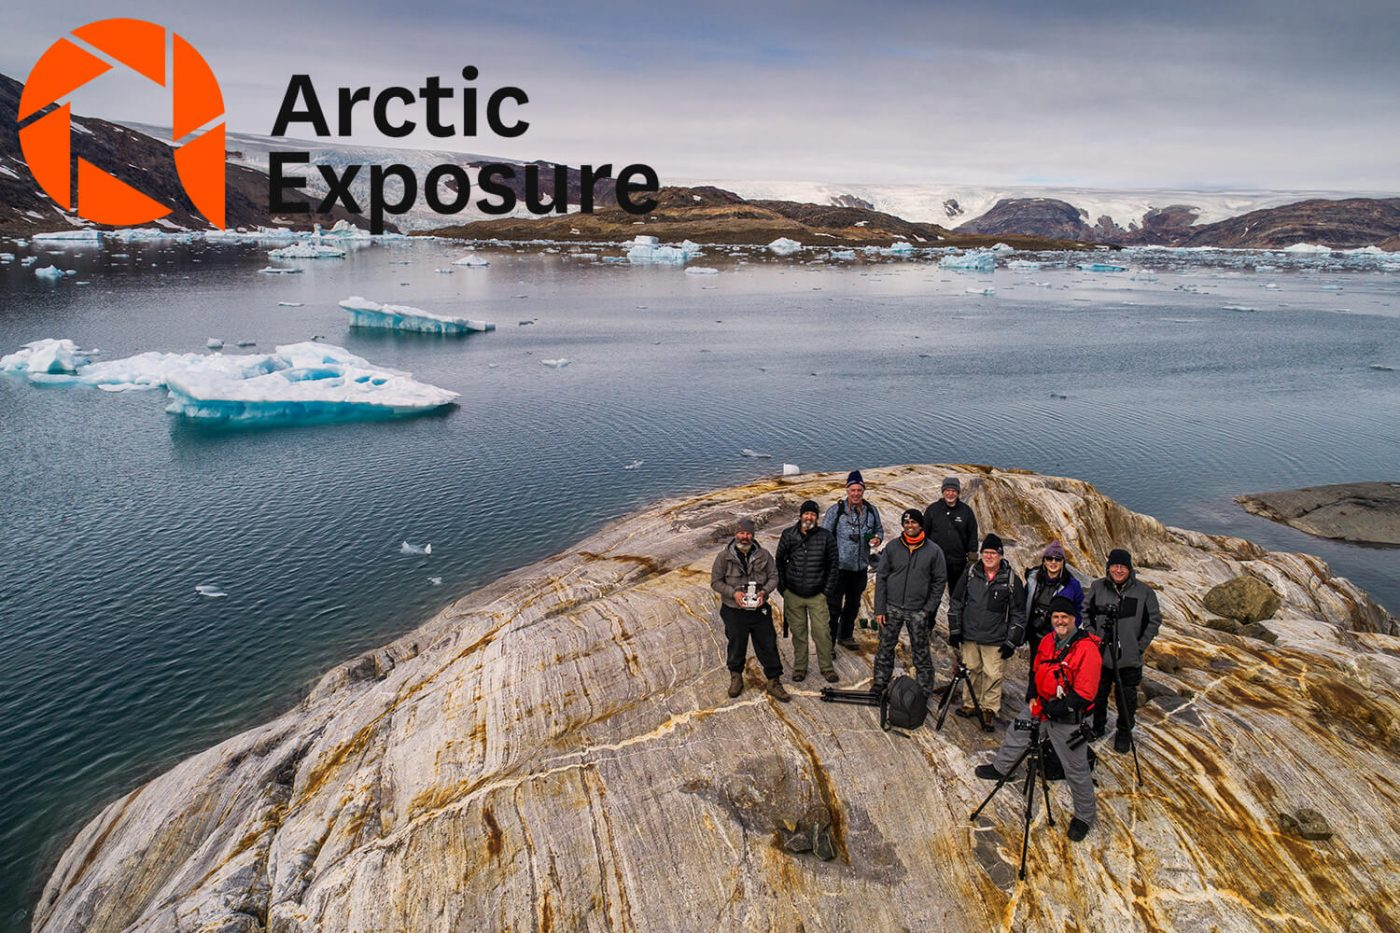 Arctic Exposure: East Greenland Photo Expedition